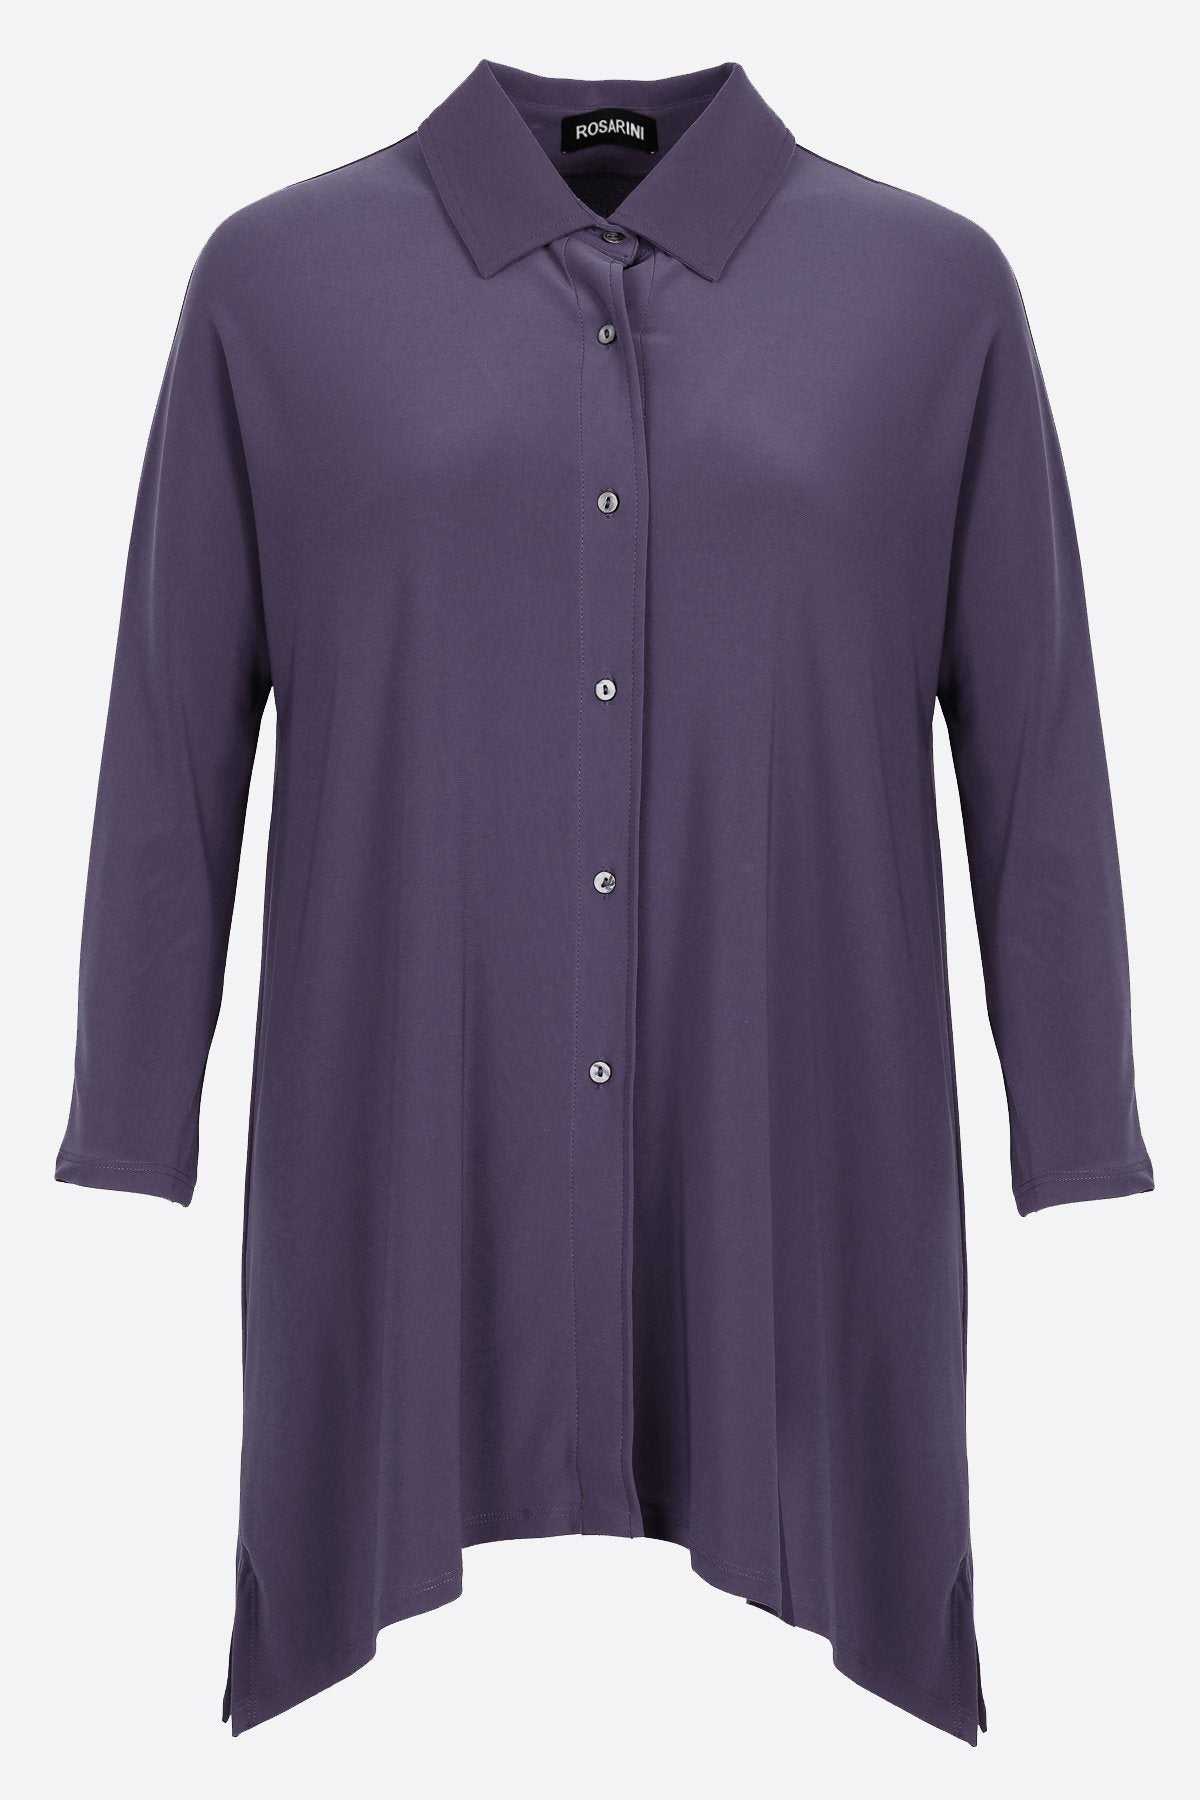 Women's Slate Button Shirt with Curved Hem 3/4 Sleeves Travel Shirt Rosarini